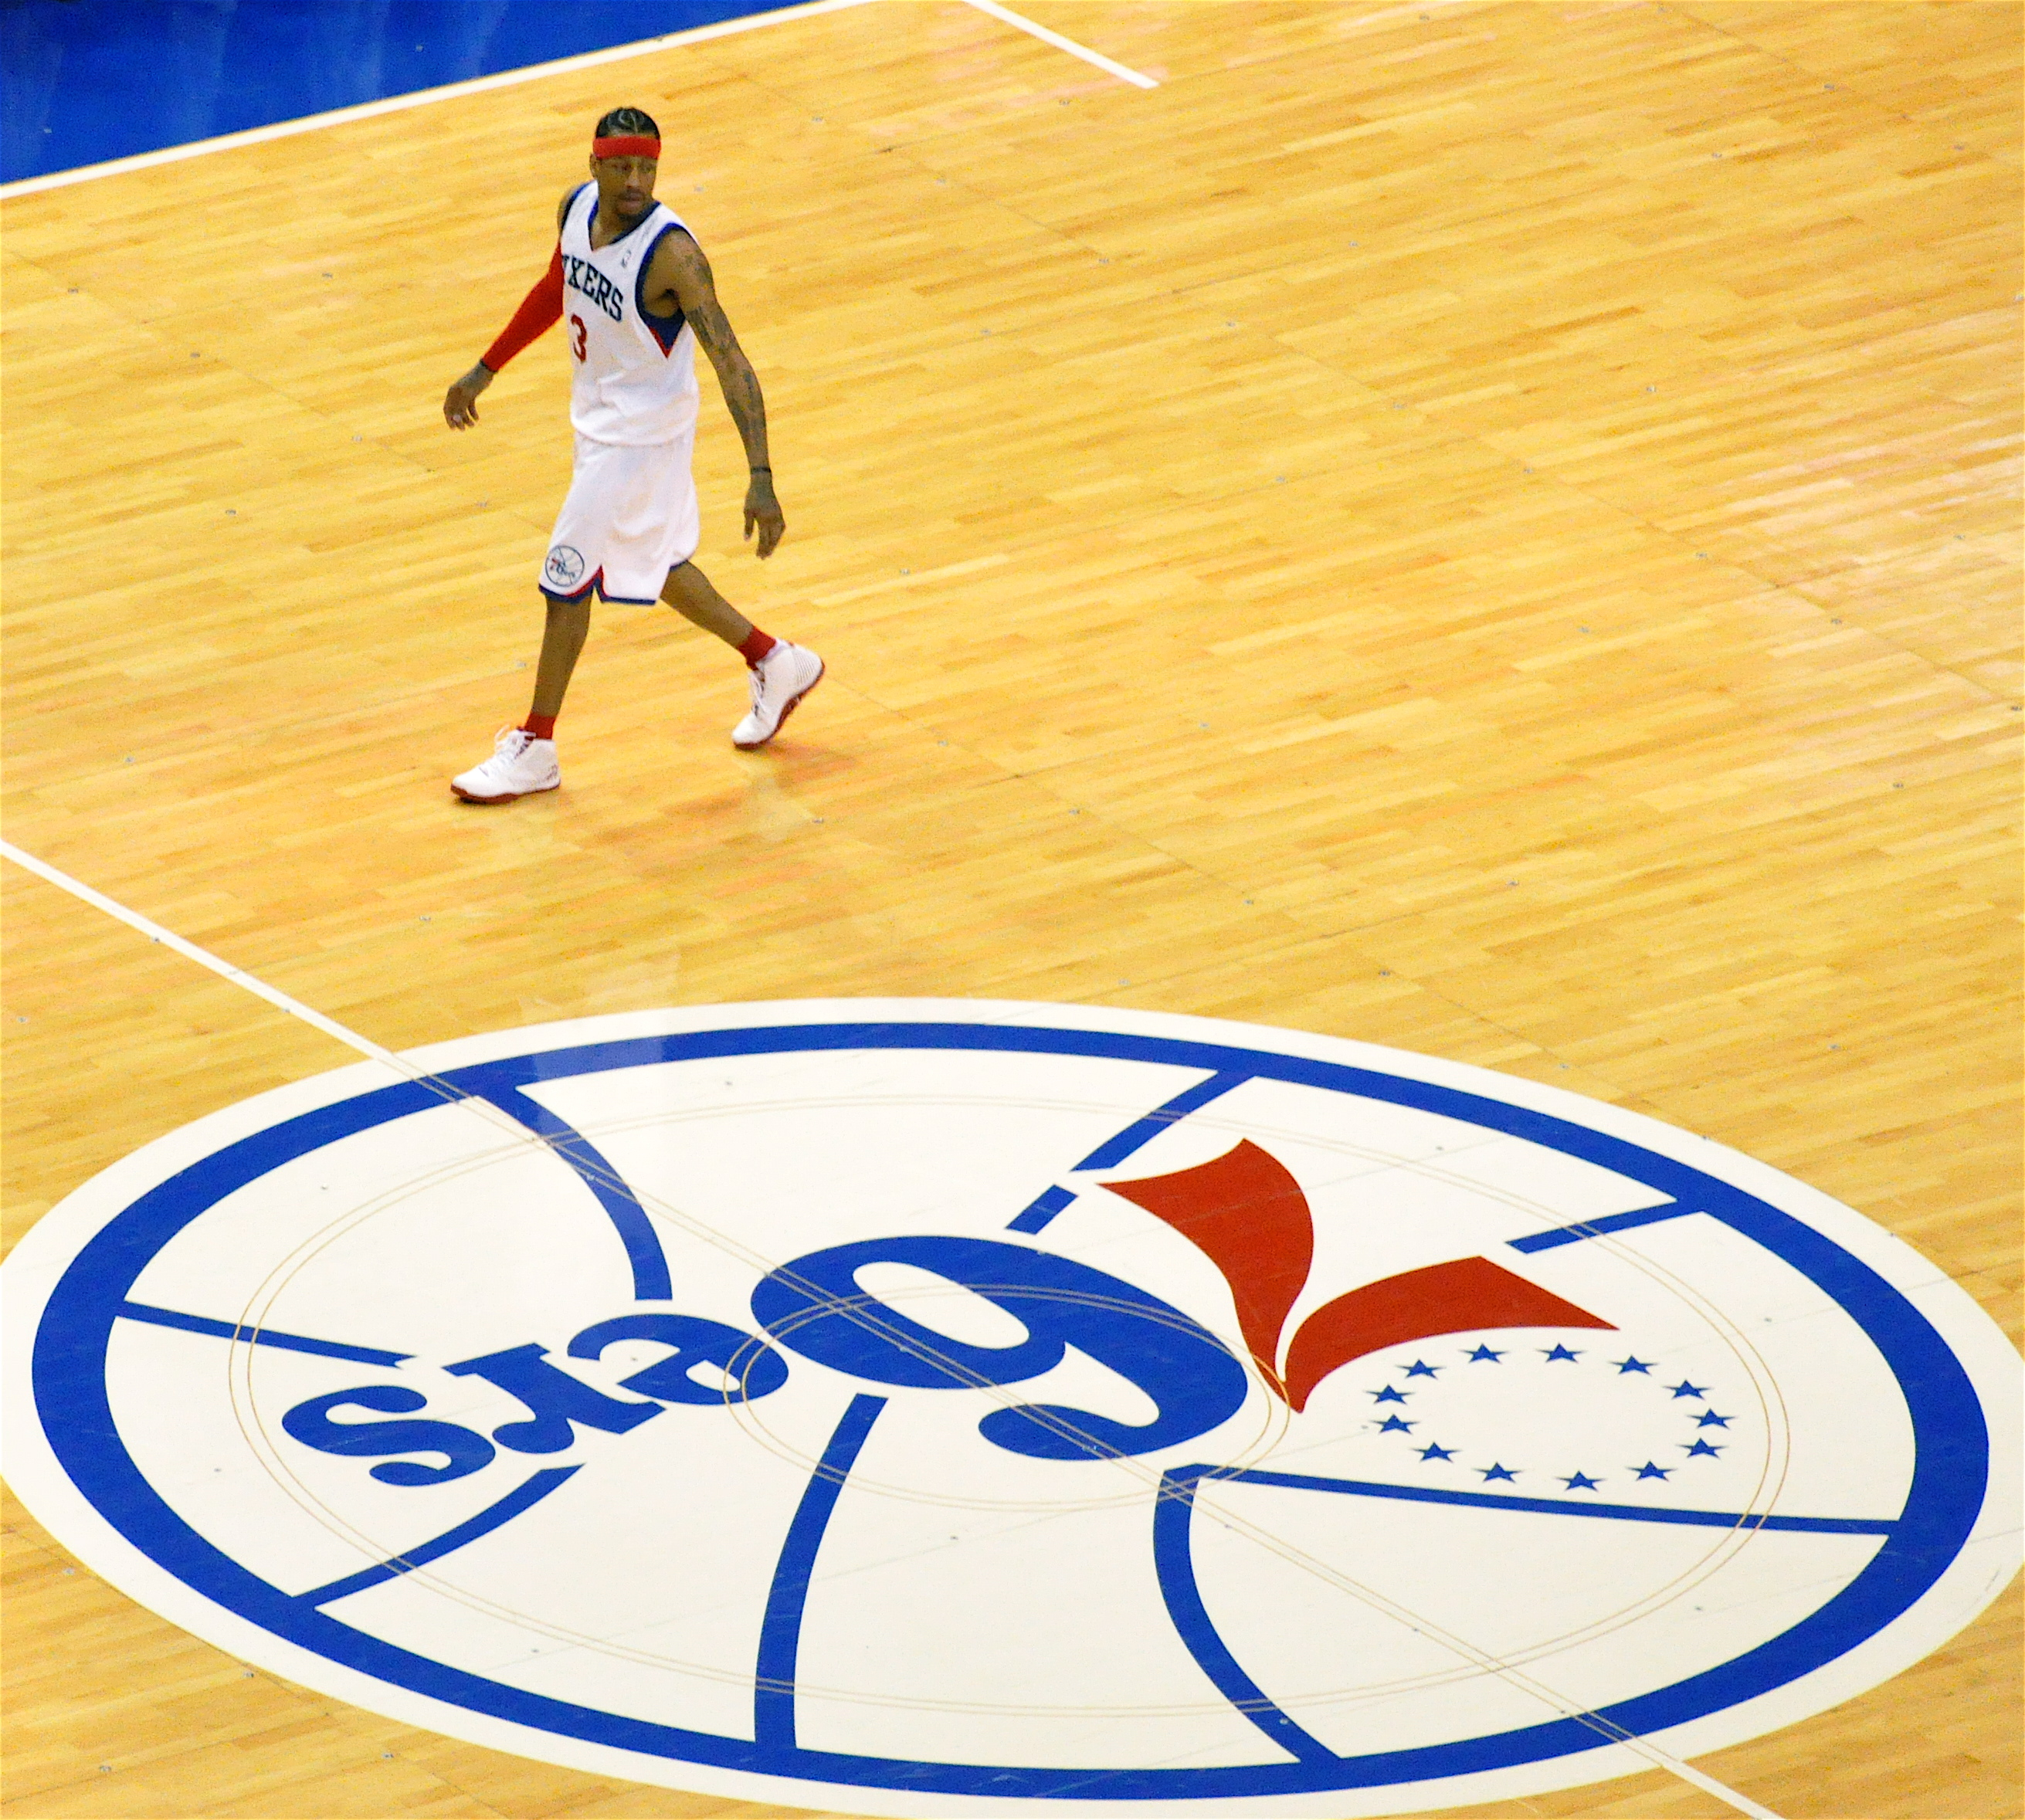 Philadelphia 76ers - Wikipedia, the free encyclopedia